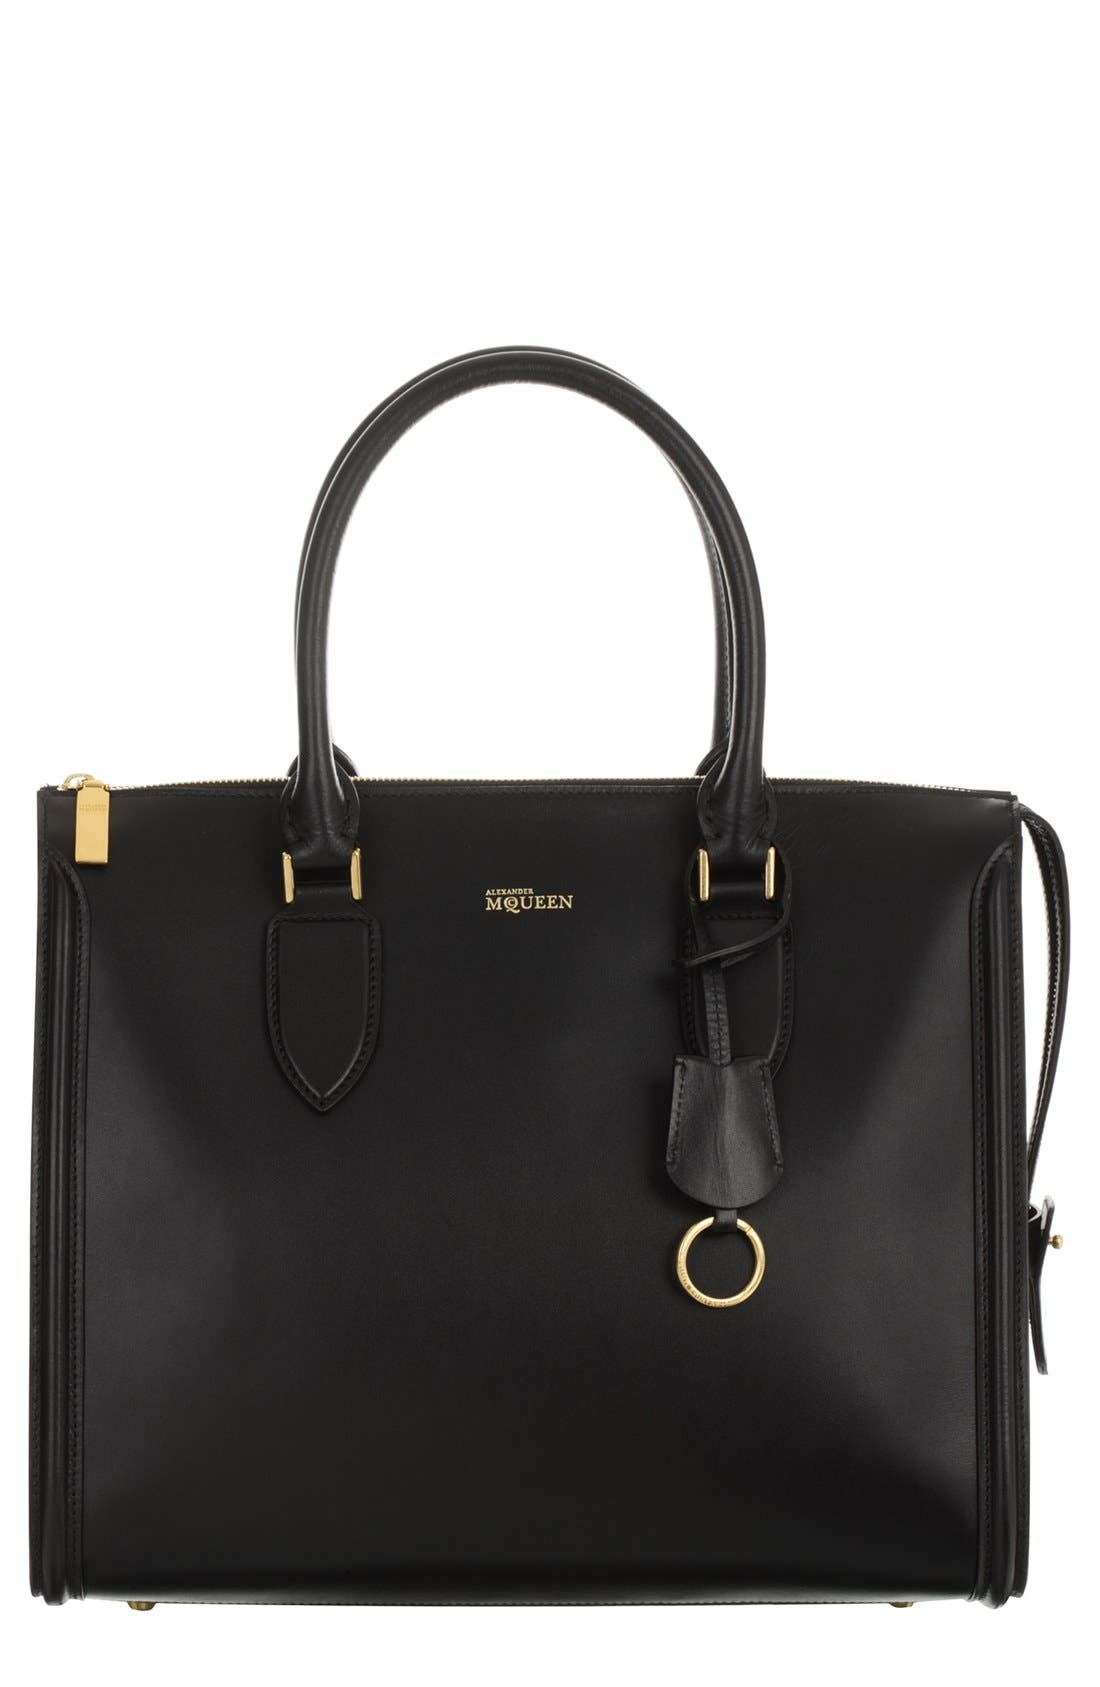 Alternate Image 1 Selected - Alexander McQueen 'Heroine' Calfskin Zip Tote